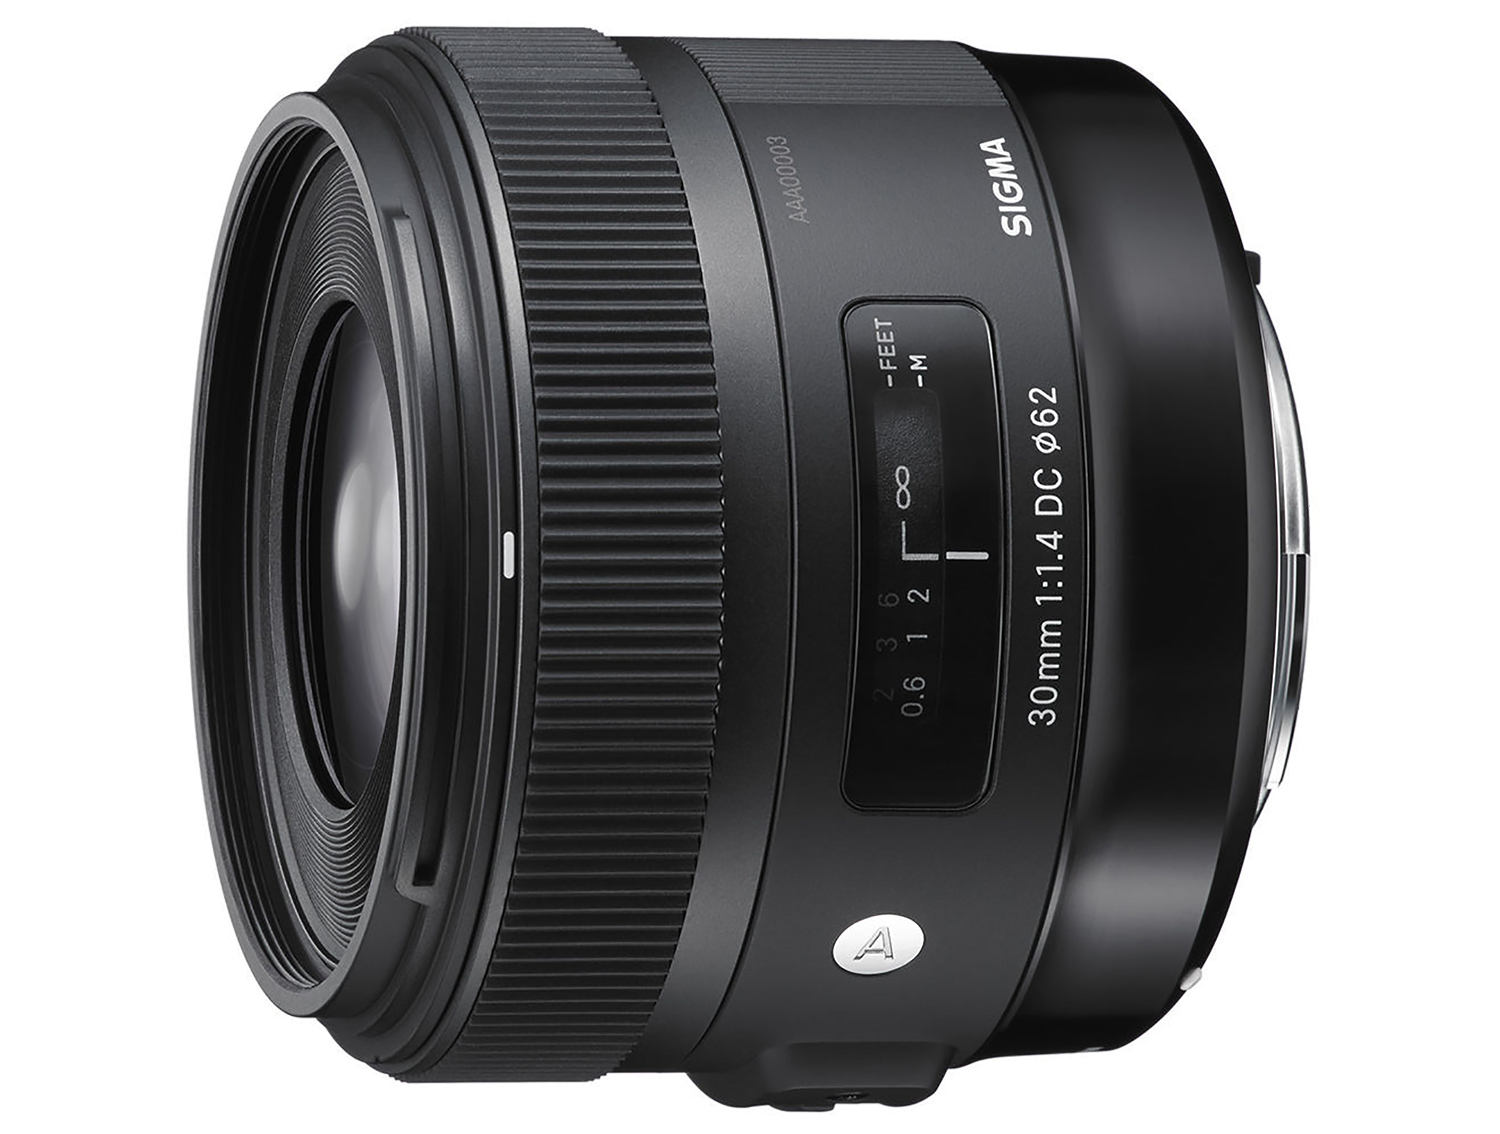 Sigma 30mm ART lens hire